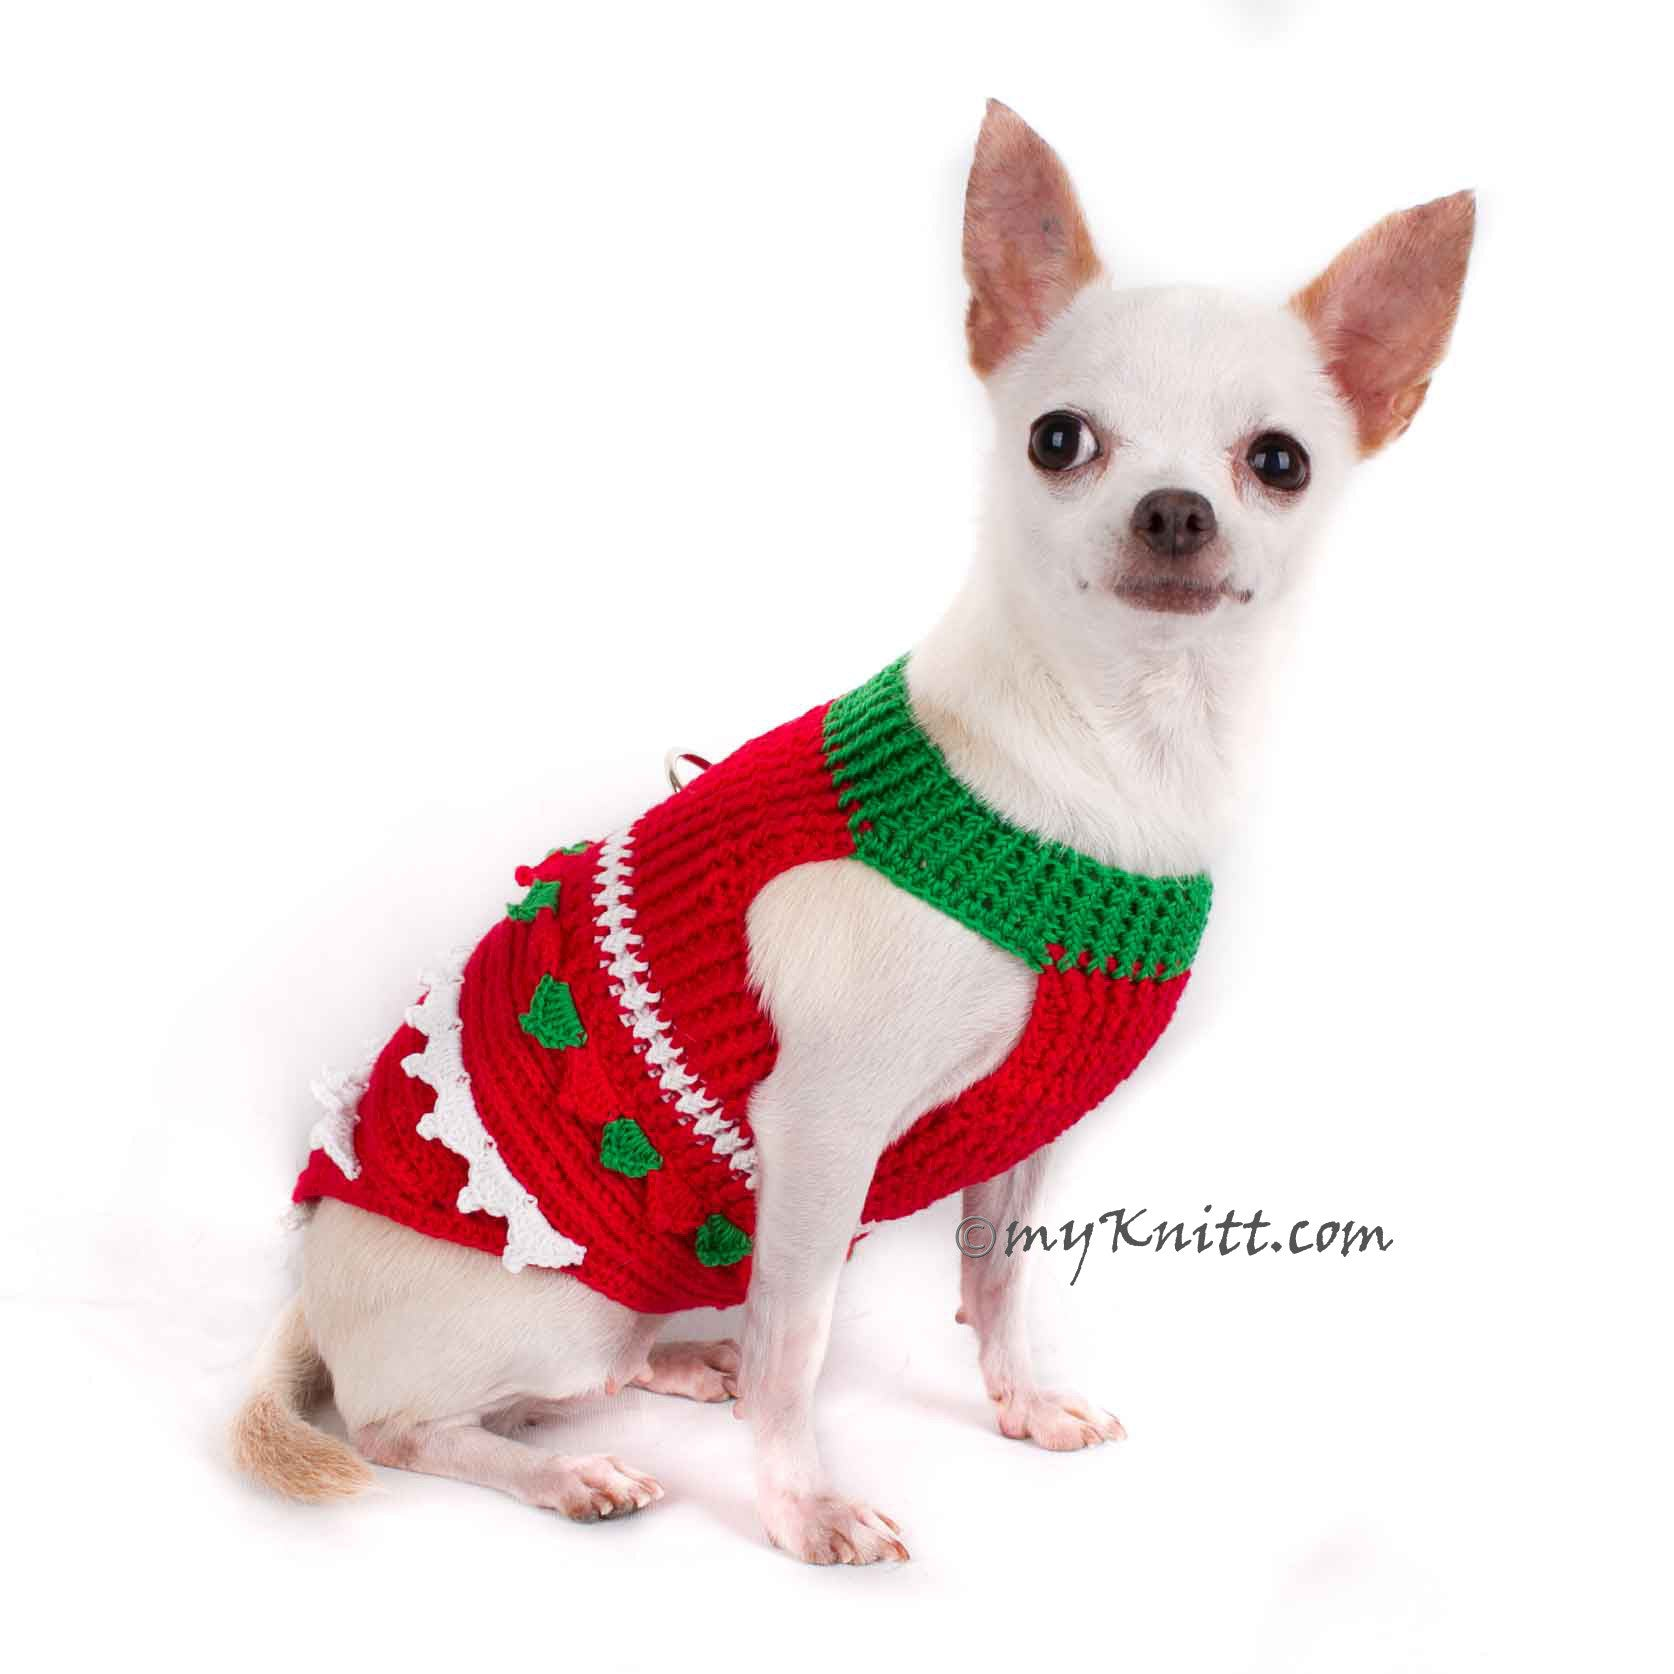 Christmas Tree Chihuahua Clothes Crochet Dog Sweater DF1 by Myknitt